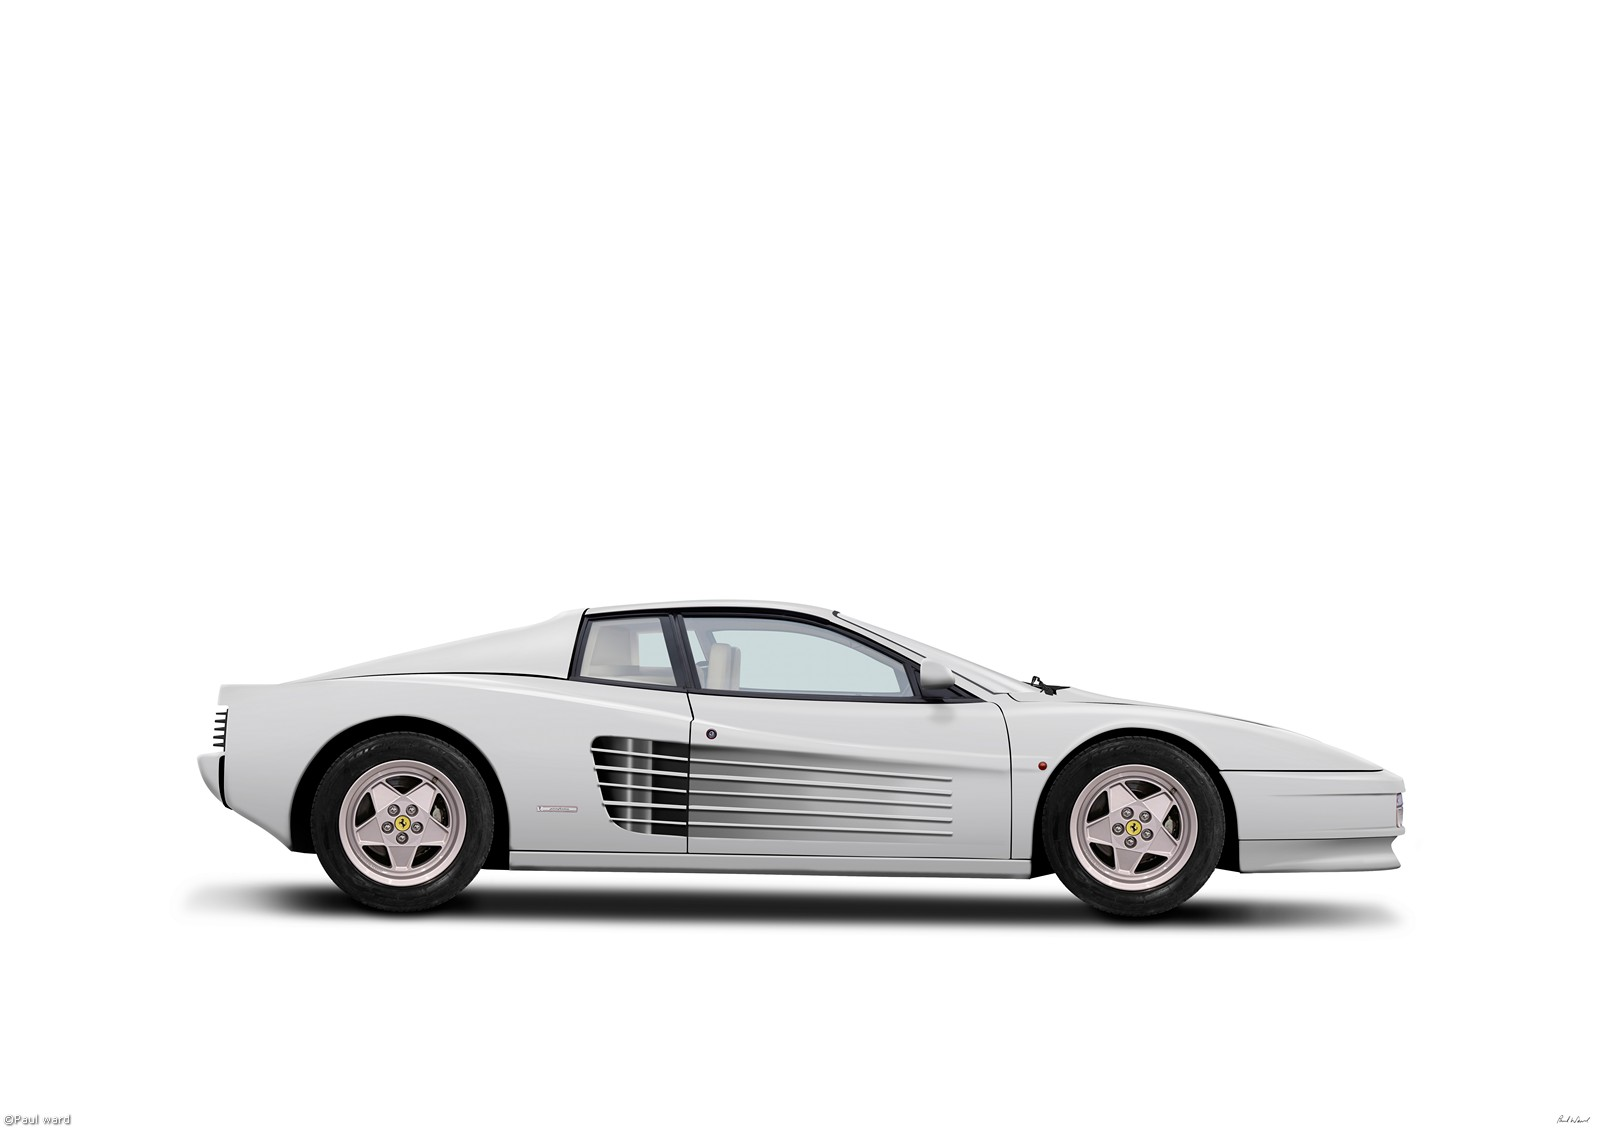 Ferrari Testarossa, digital art by Birmingham car photographer Paul Ward. Classic cars, supercars, Automotive.